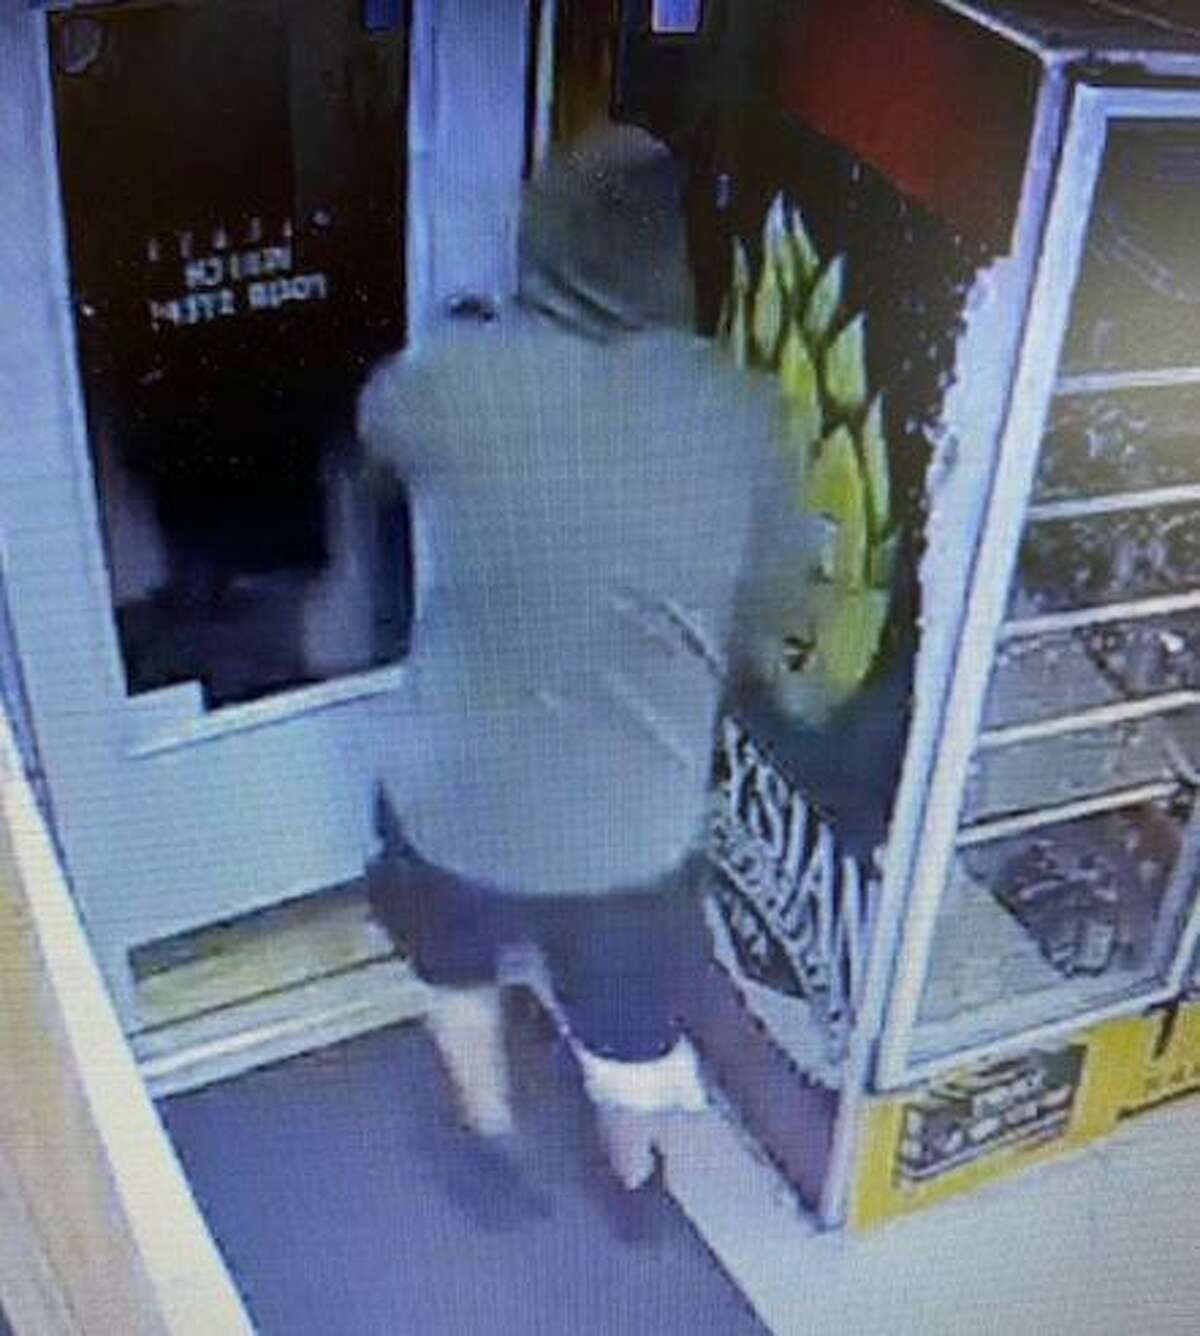 State police are asking for the public's help identifying this man believed to have carried out an armed robbery at the Chaplin Package Store on Willimantic Road in Chaplin Thursday, Sept. 10.